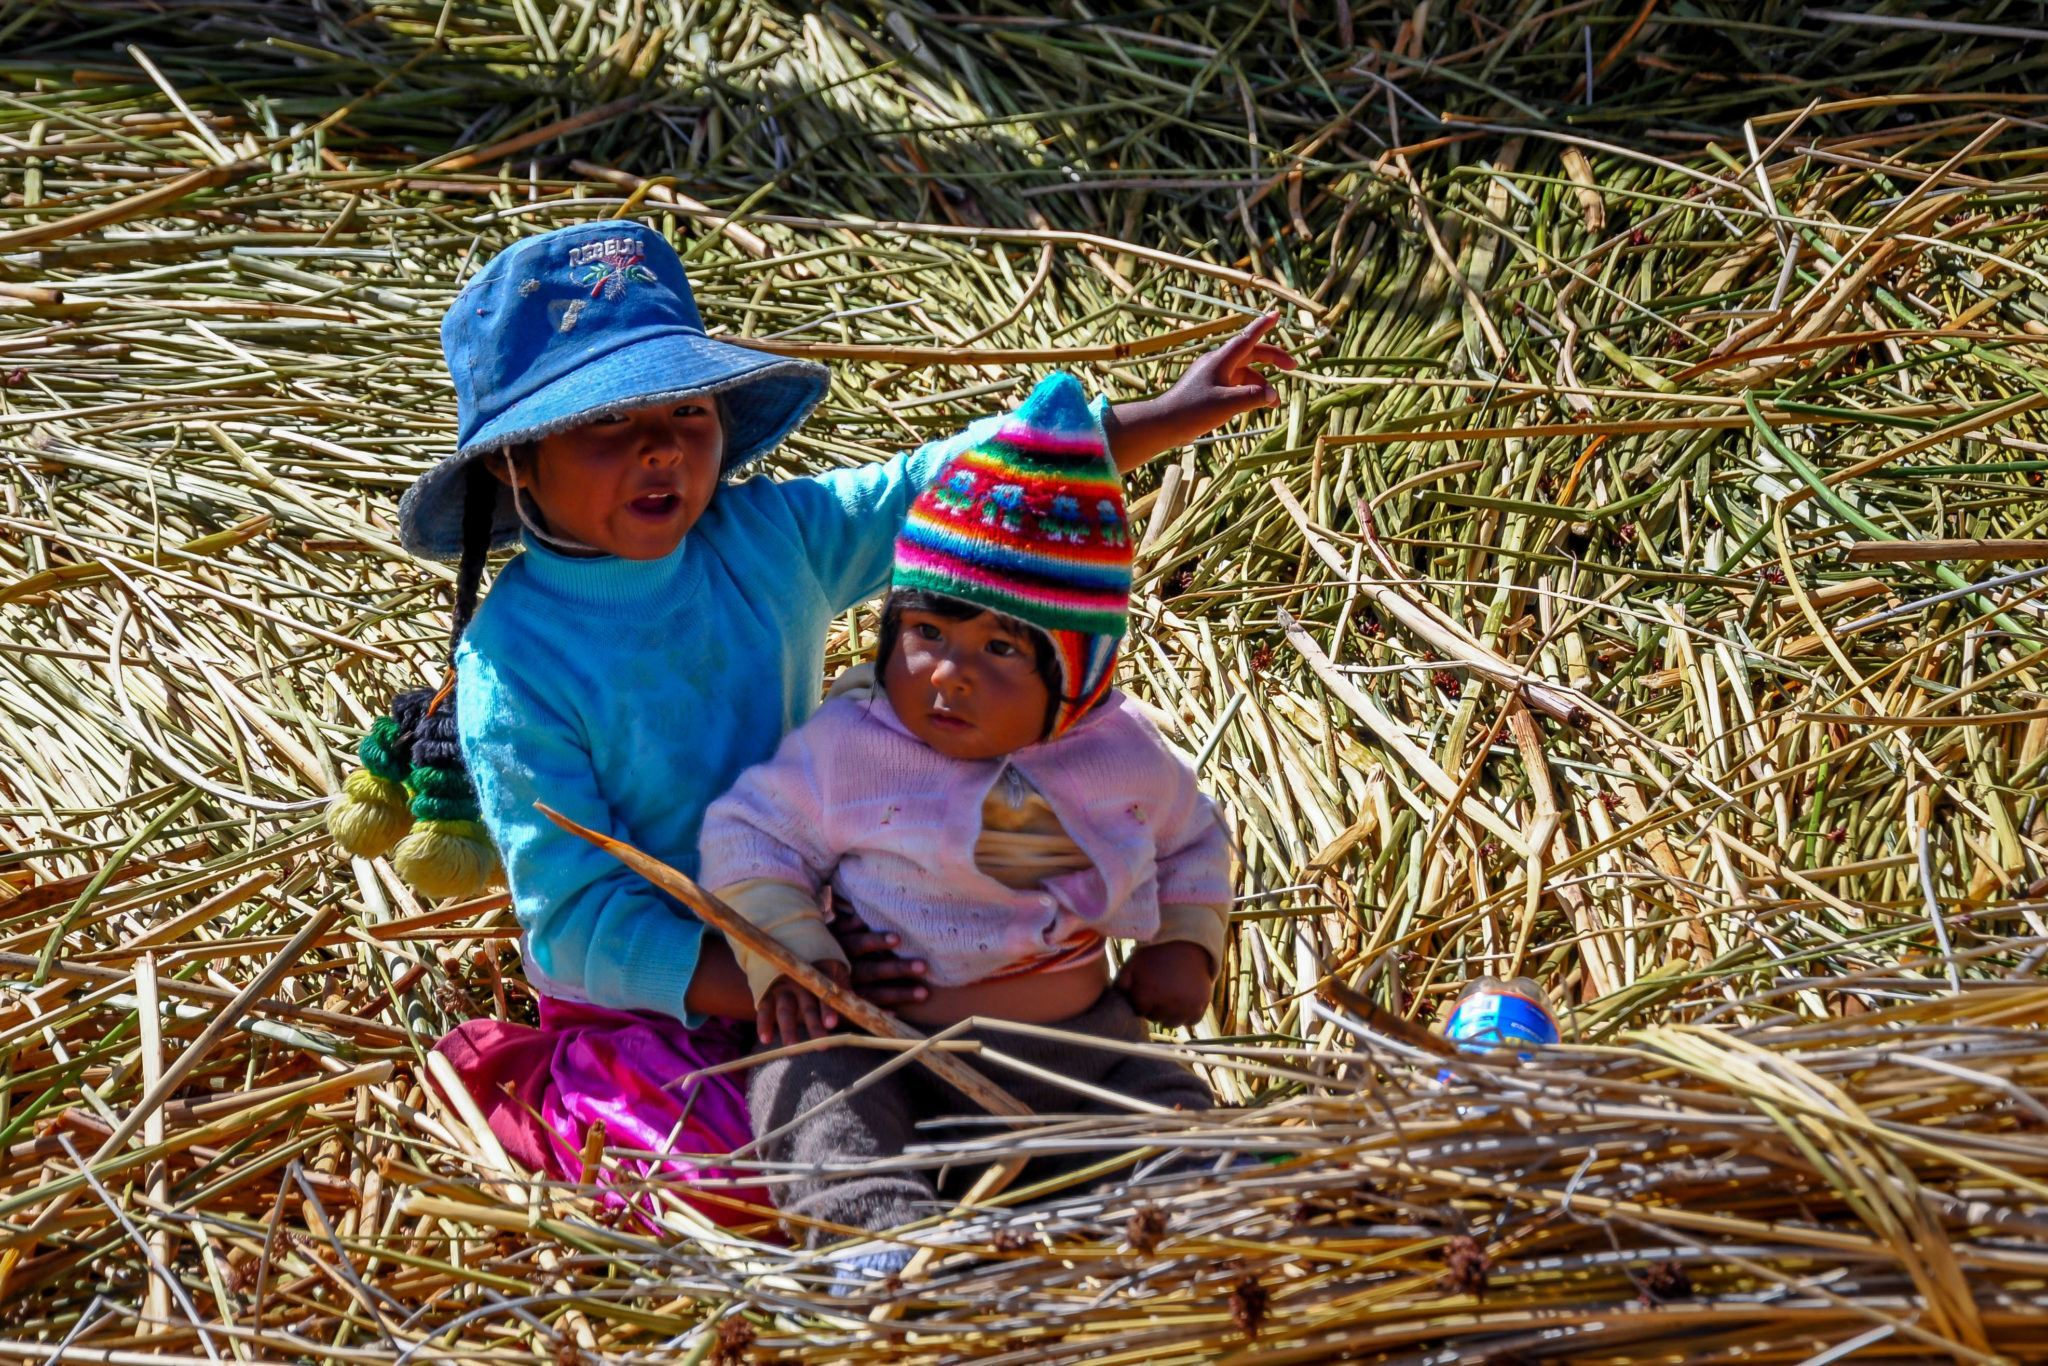 Two young children playing in Peru